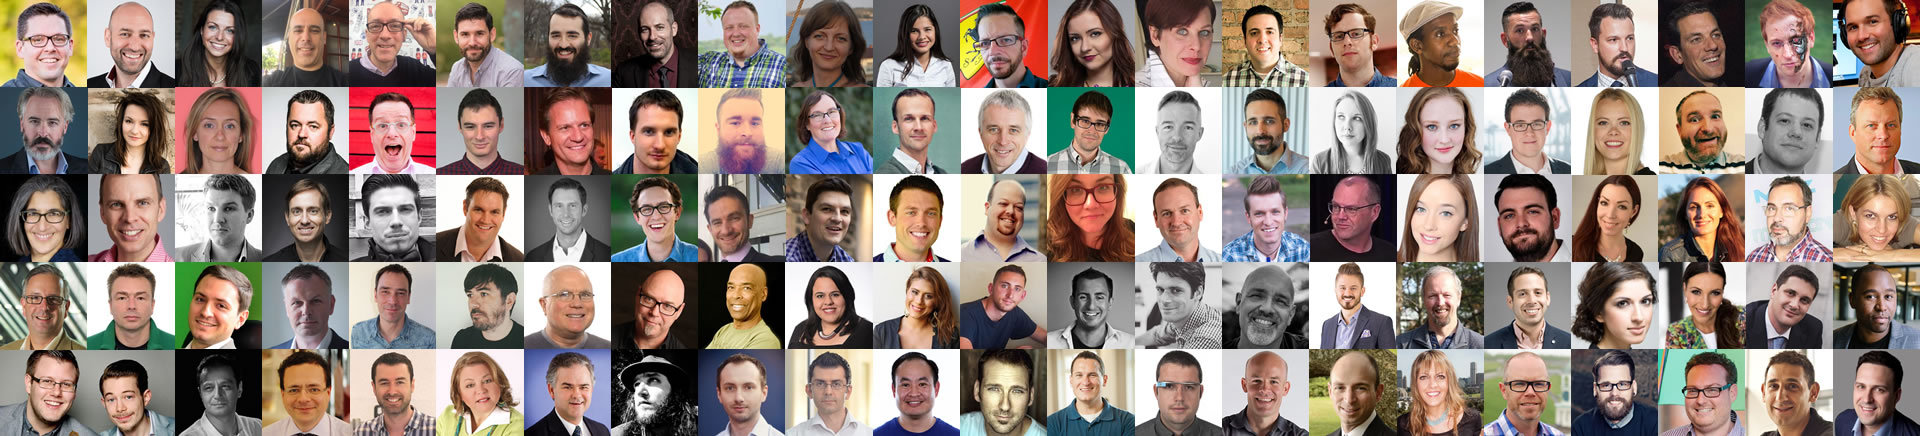 110 Experts on the Digital Marketing Radio Christmas Special 2016